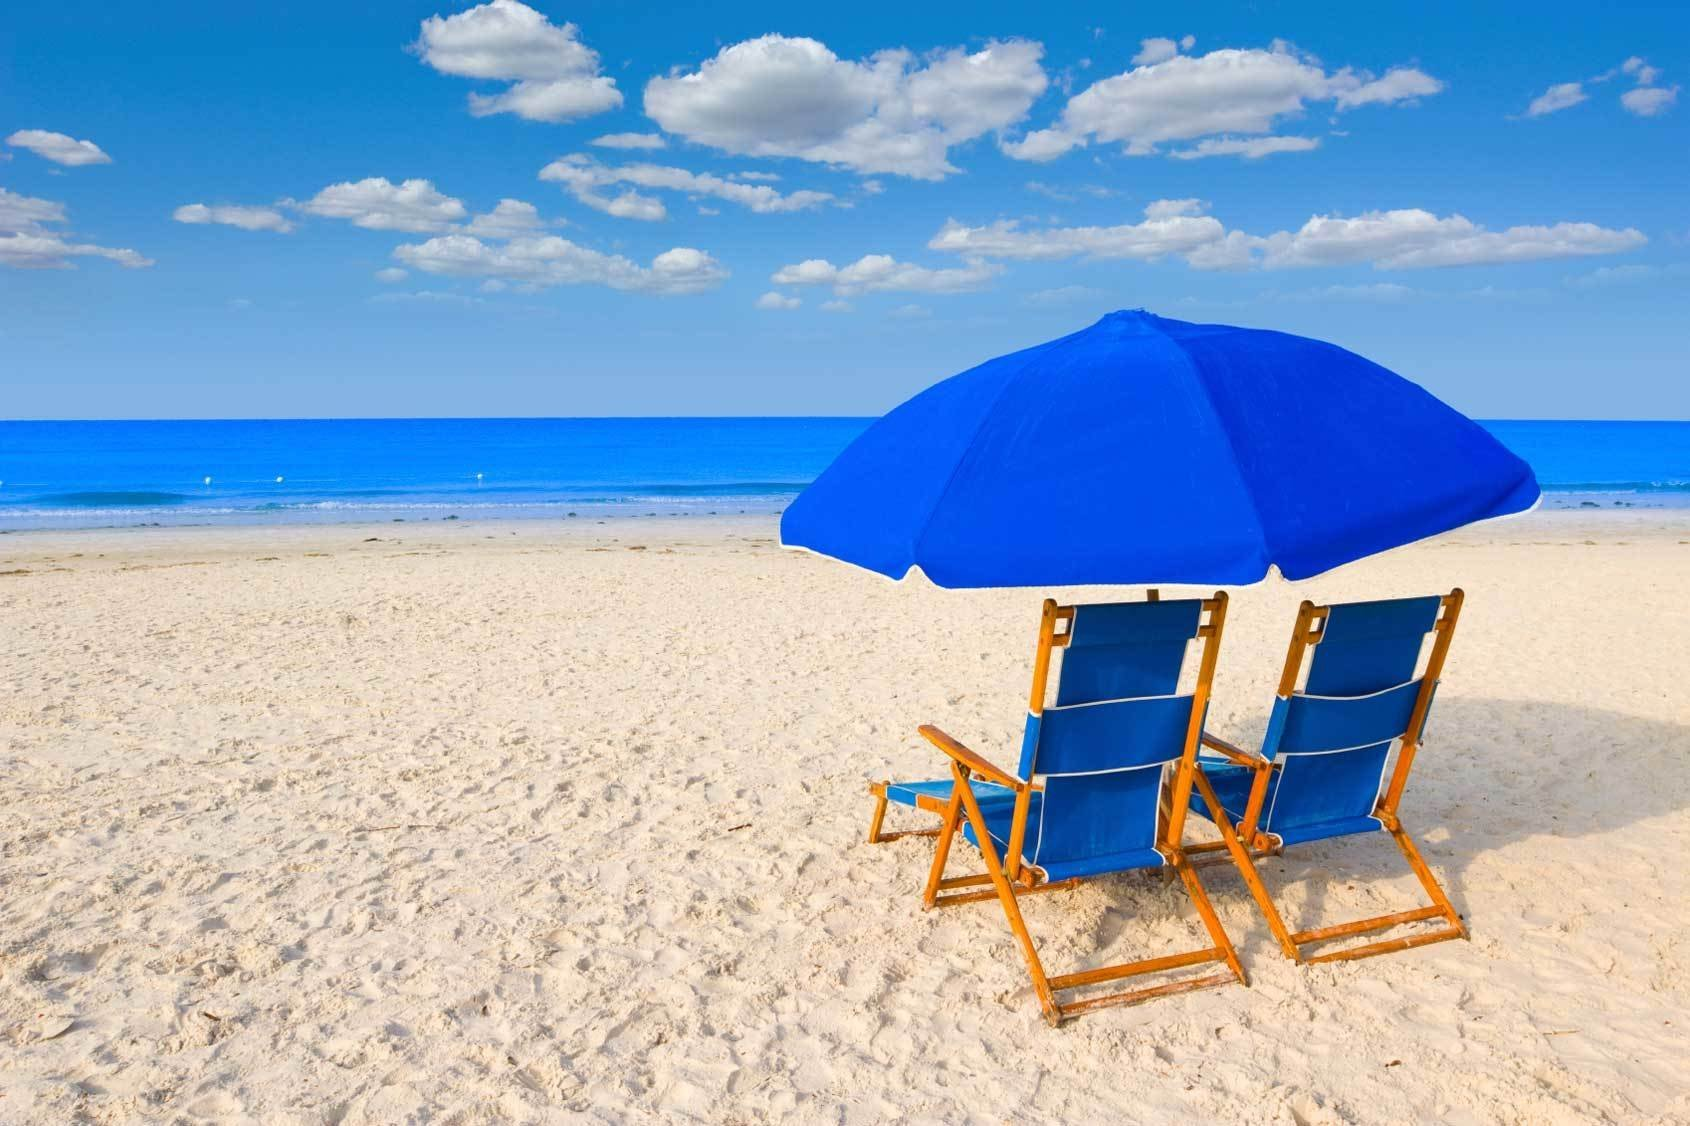 Top Beaches with Chair and Umbrella